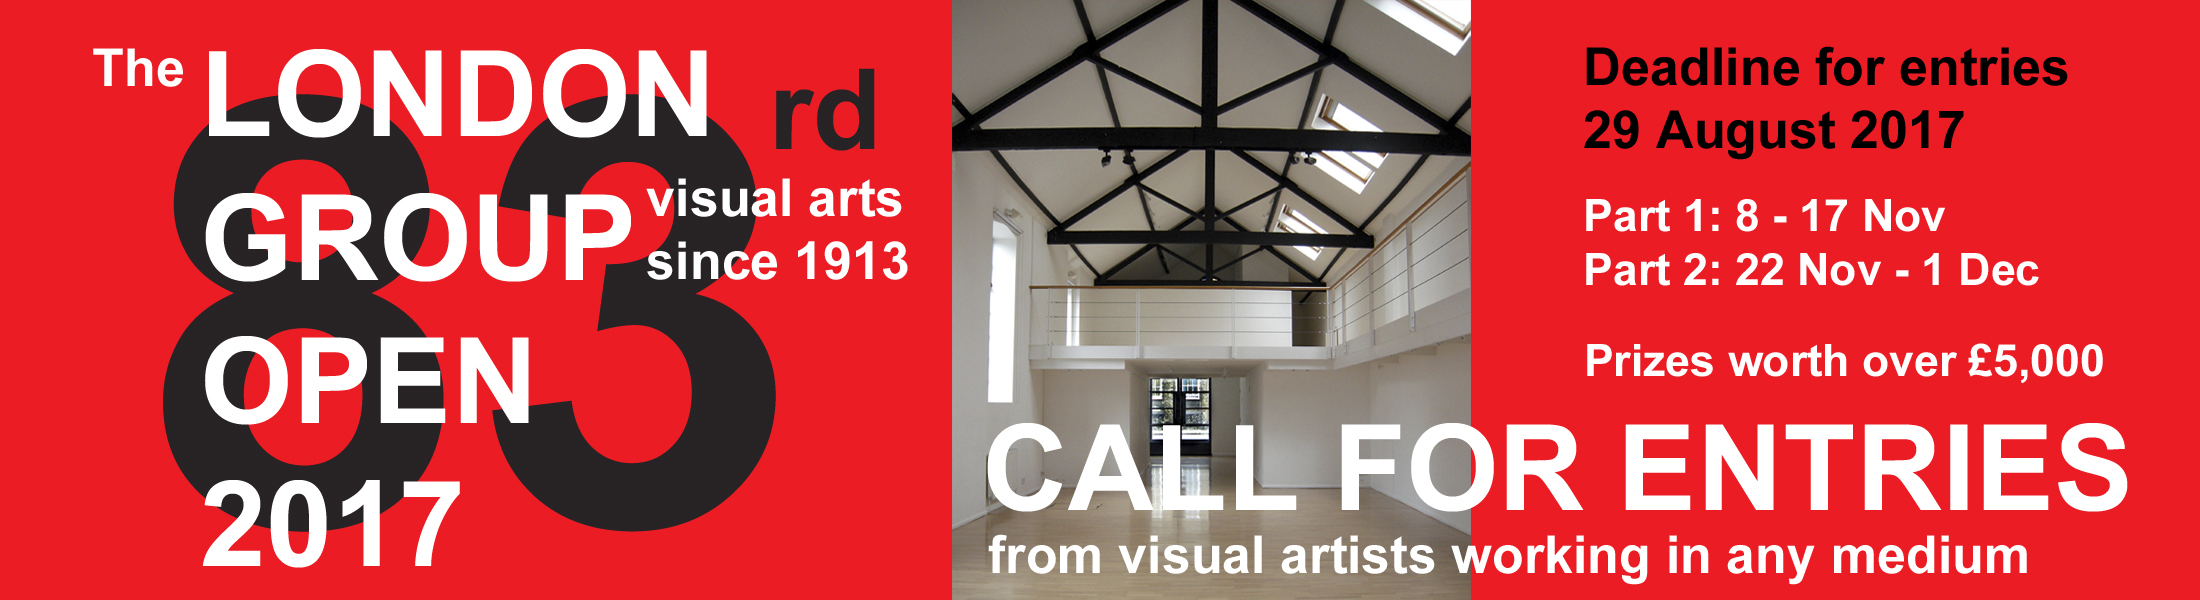 The London Group Open 2017 – Call for Entries - logo